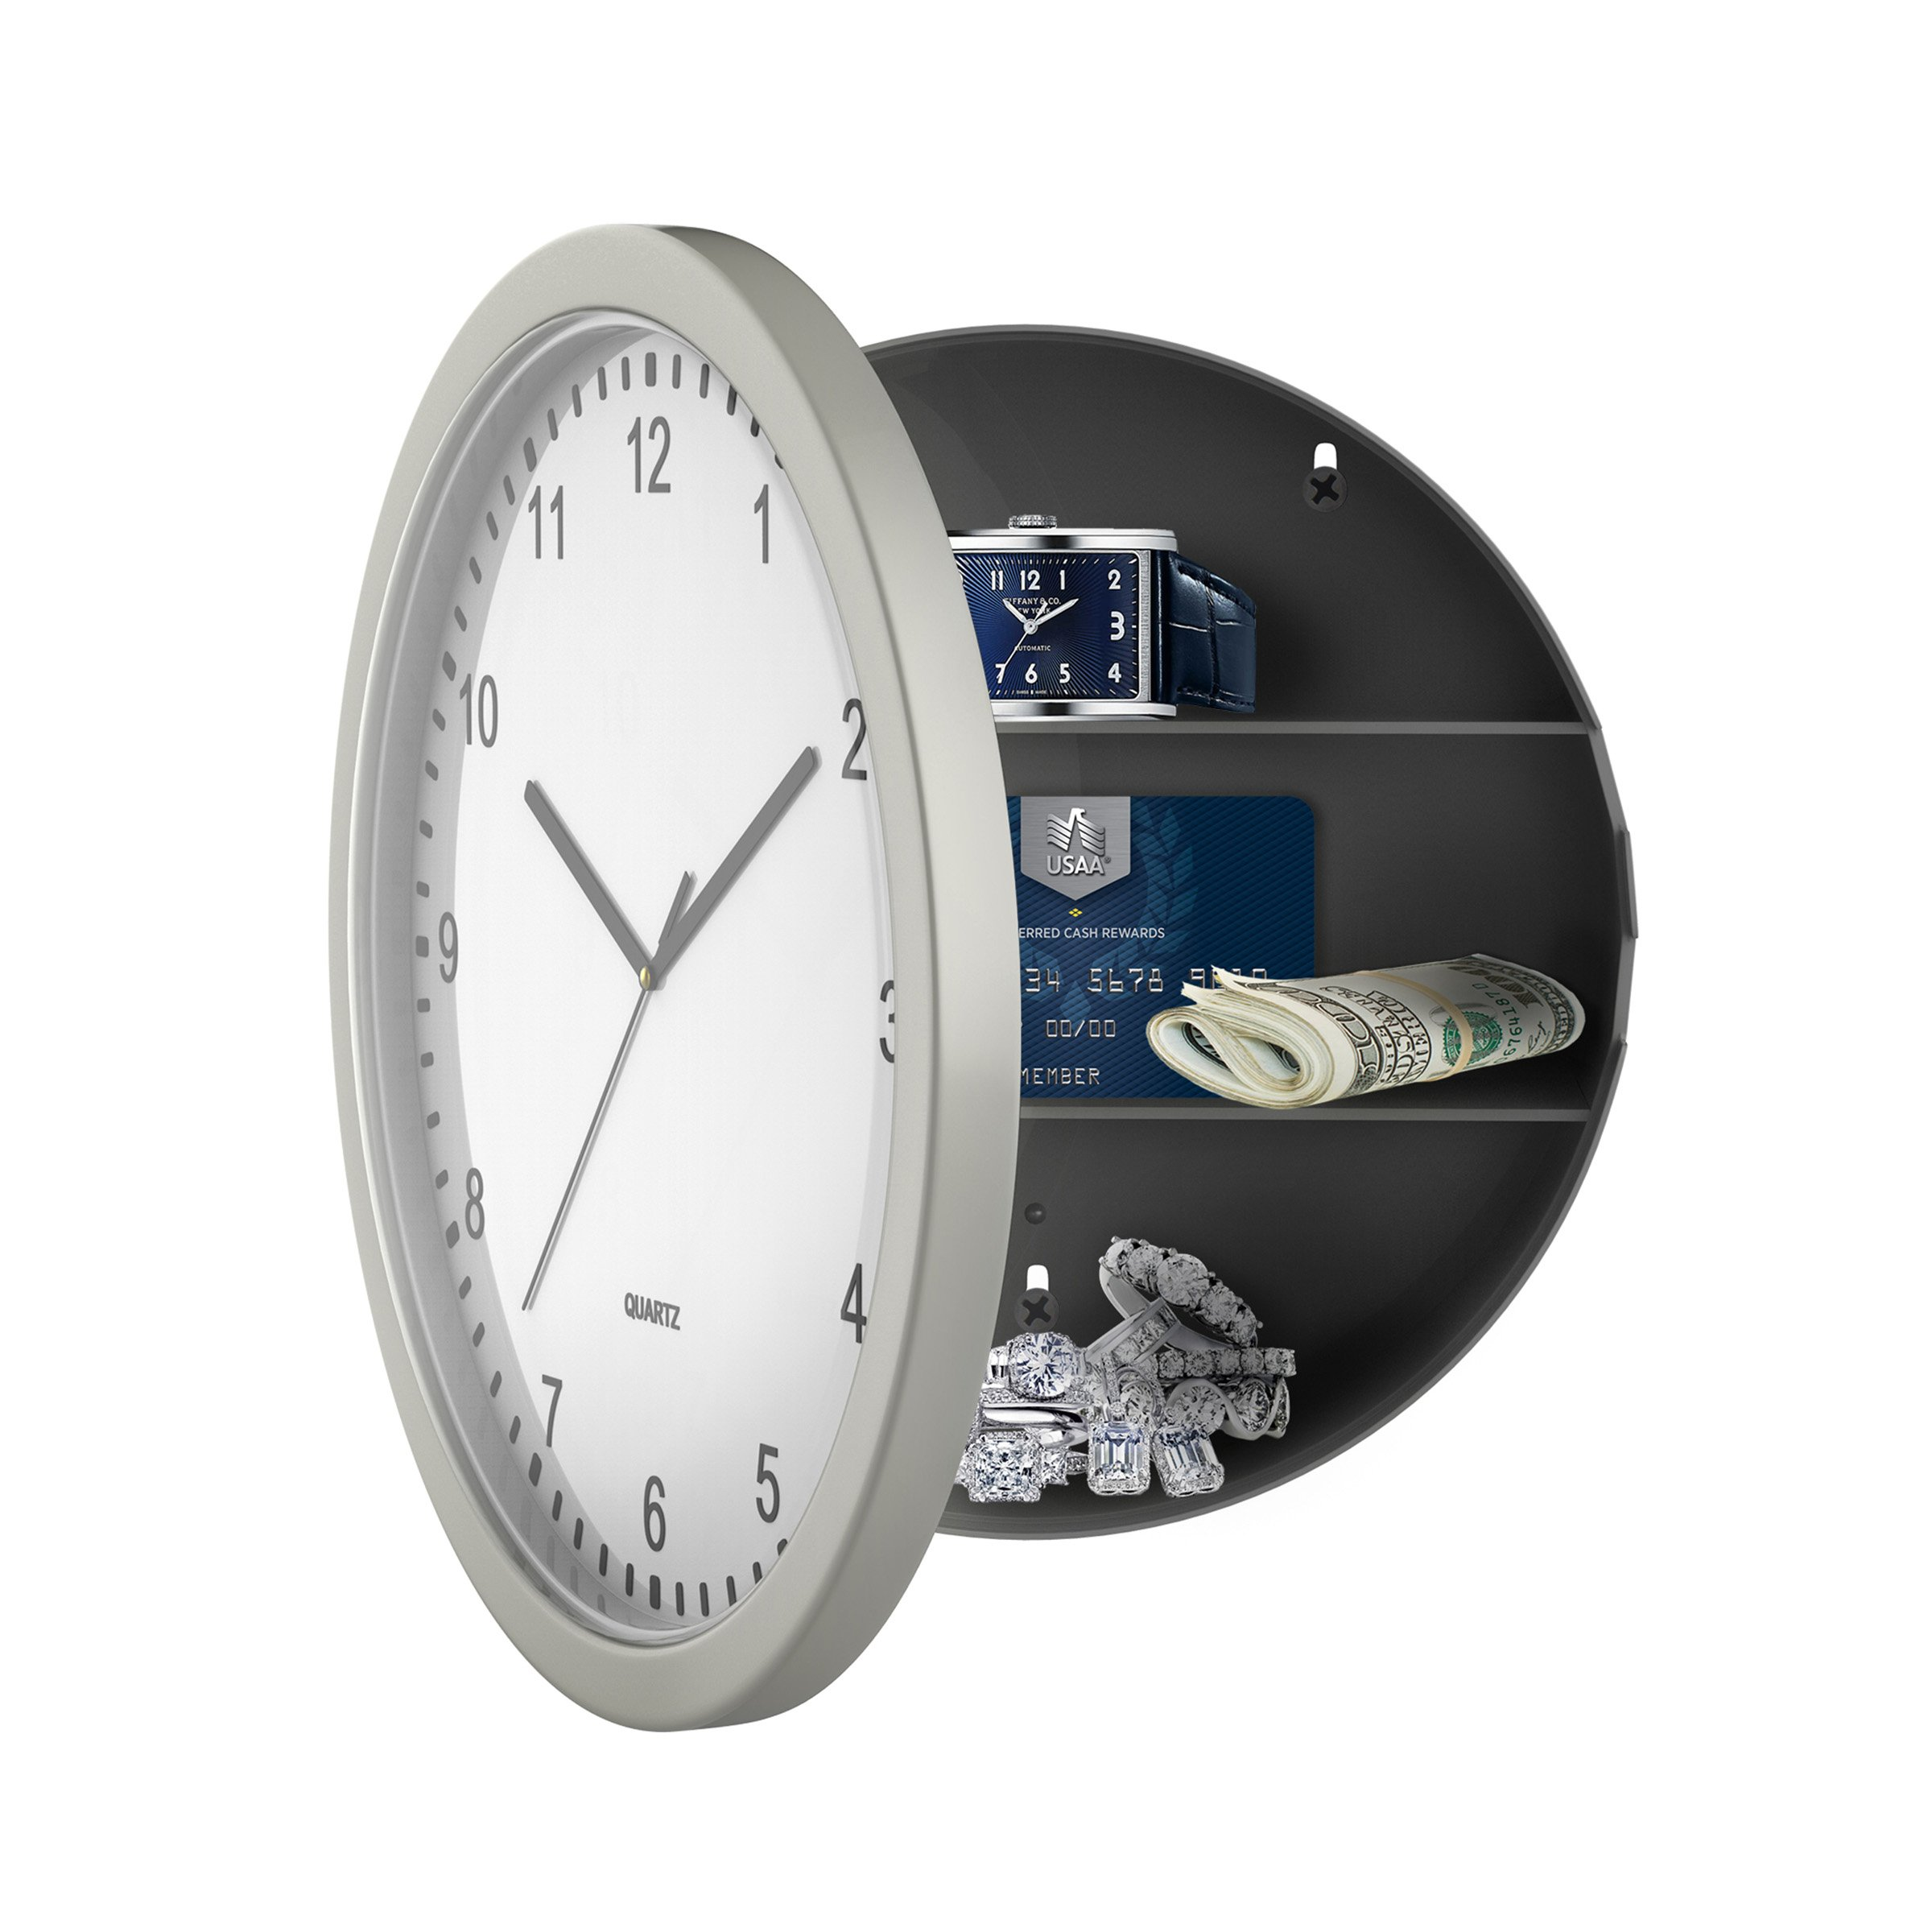 Stalwart 82-5894 Hidden Compartment Wall 10'' Battery Operated Working Analog Clock with Secret Interior Storage for Jewelry, Cash, Valuables by Stalwart